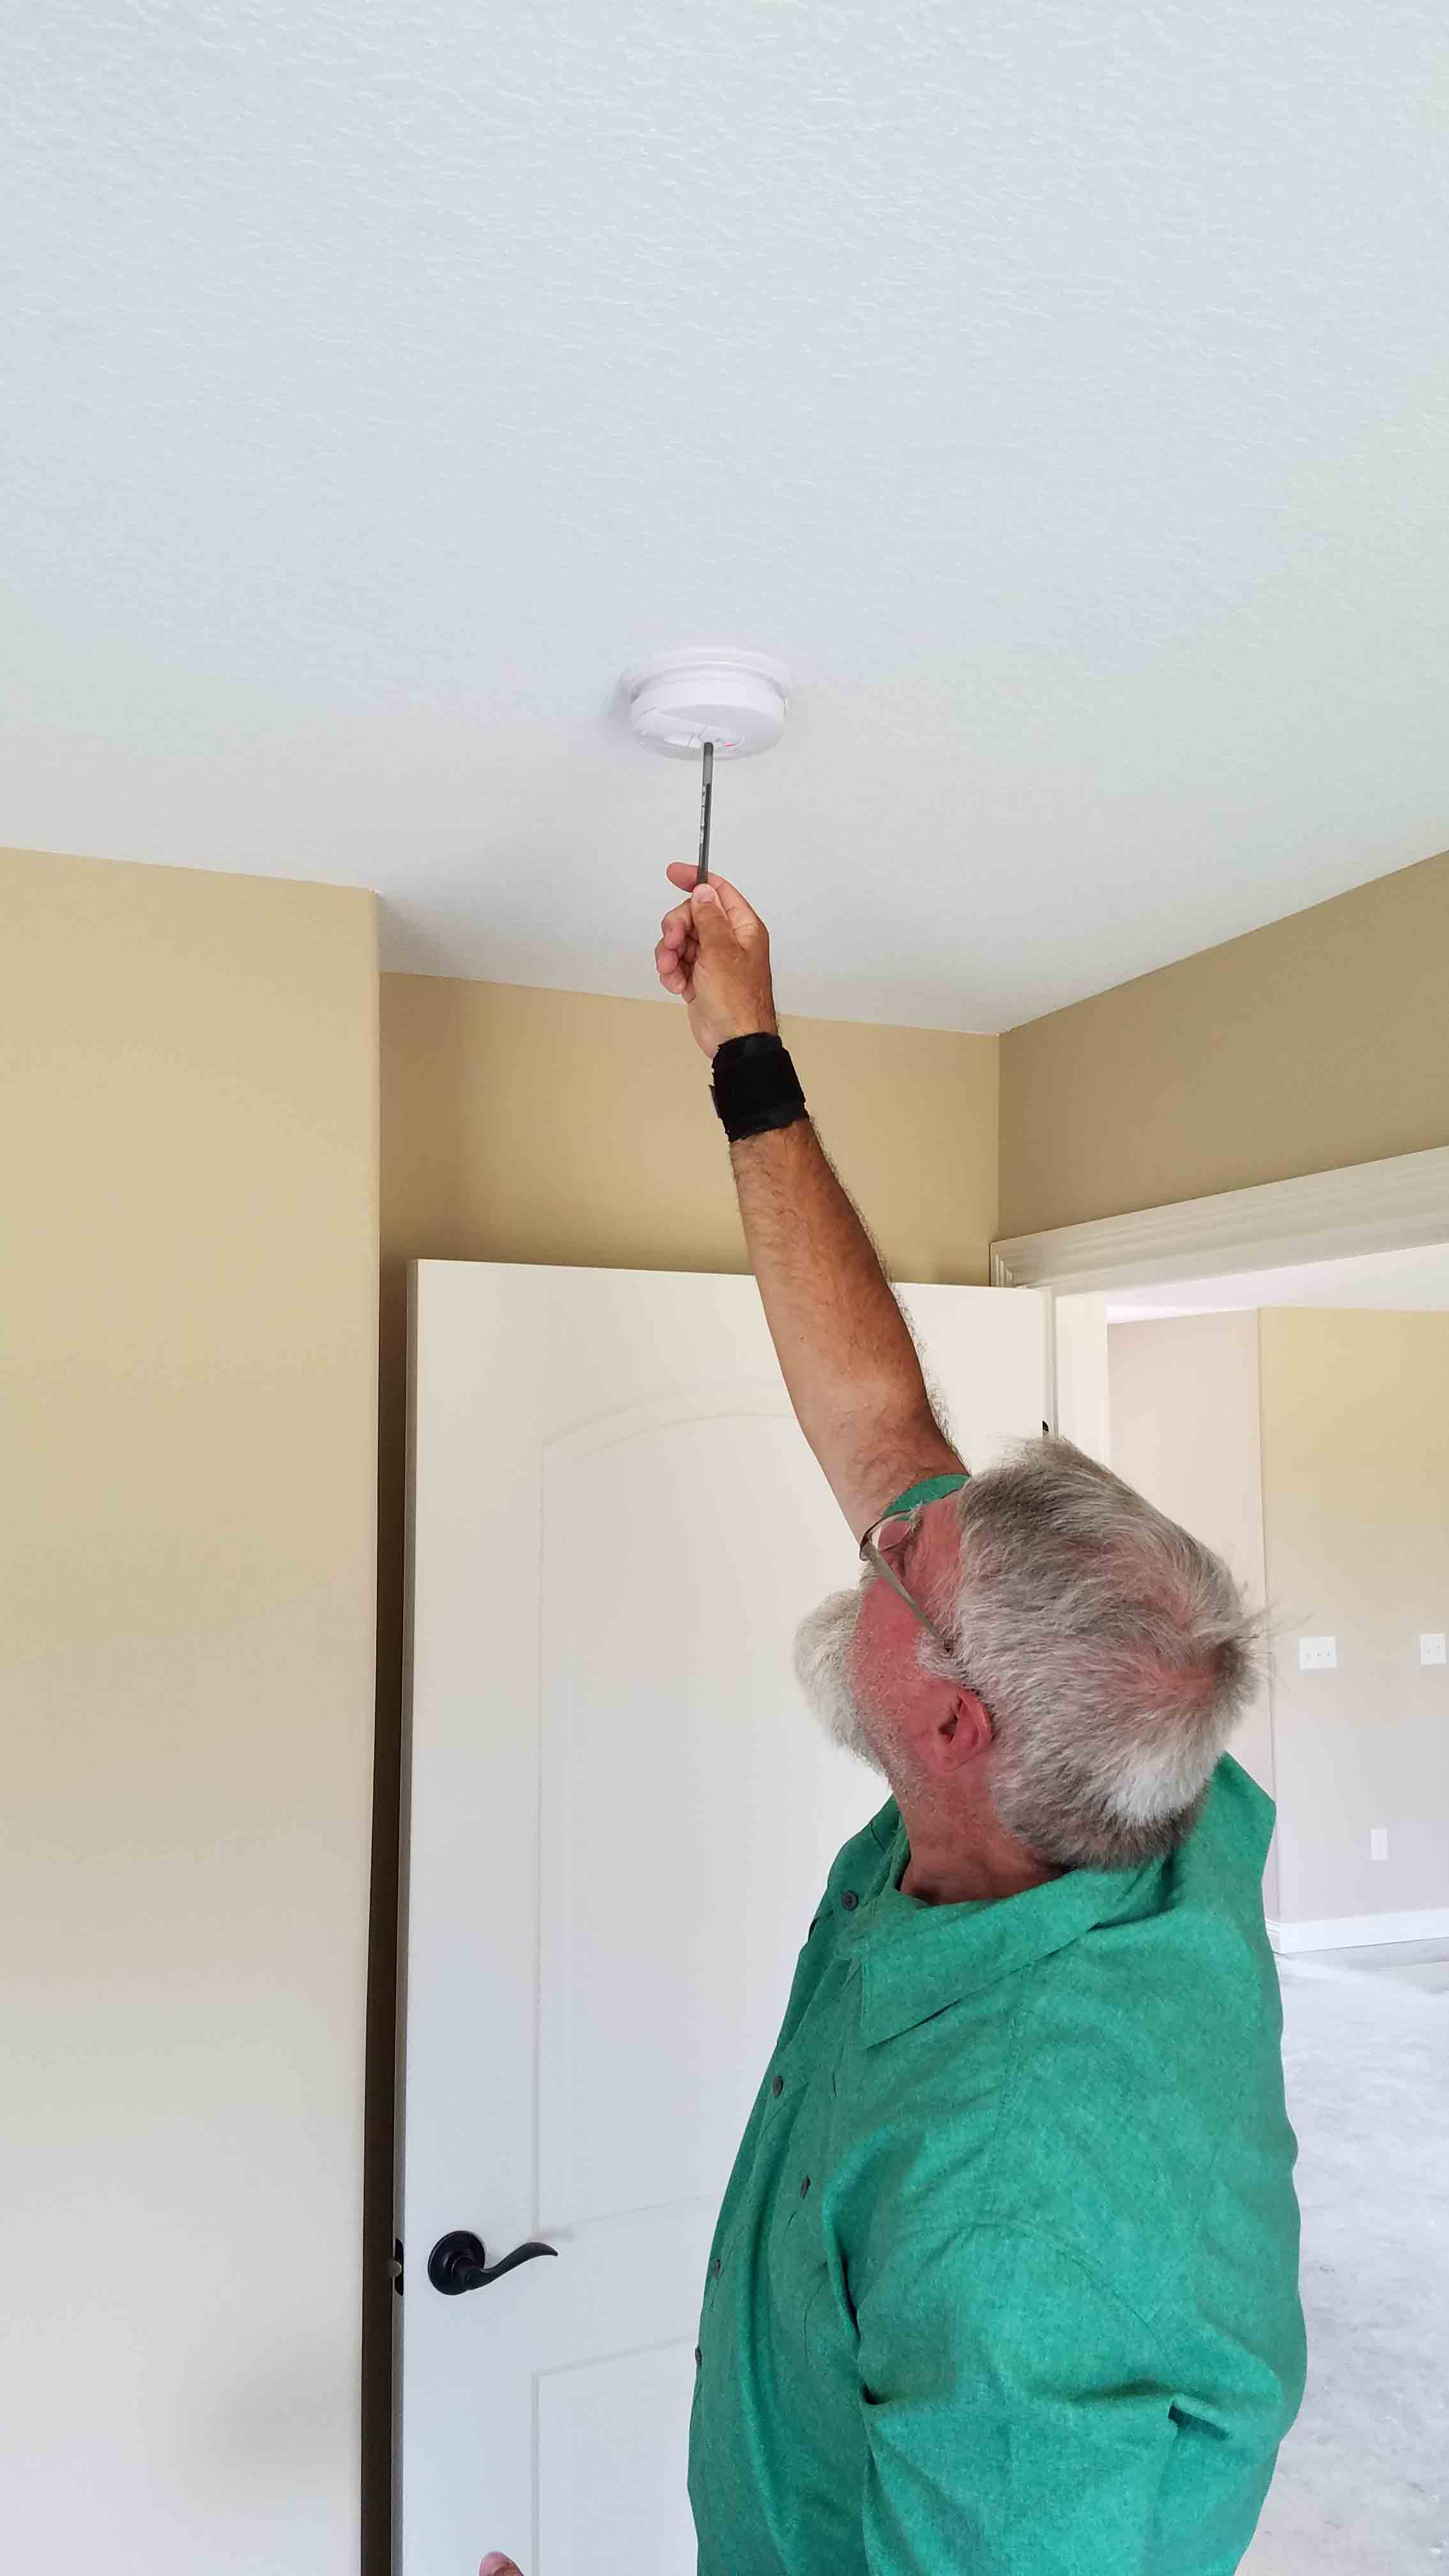 Building Commissioner Testing Smoke Alarm